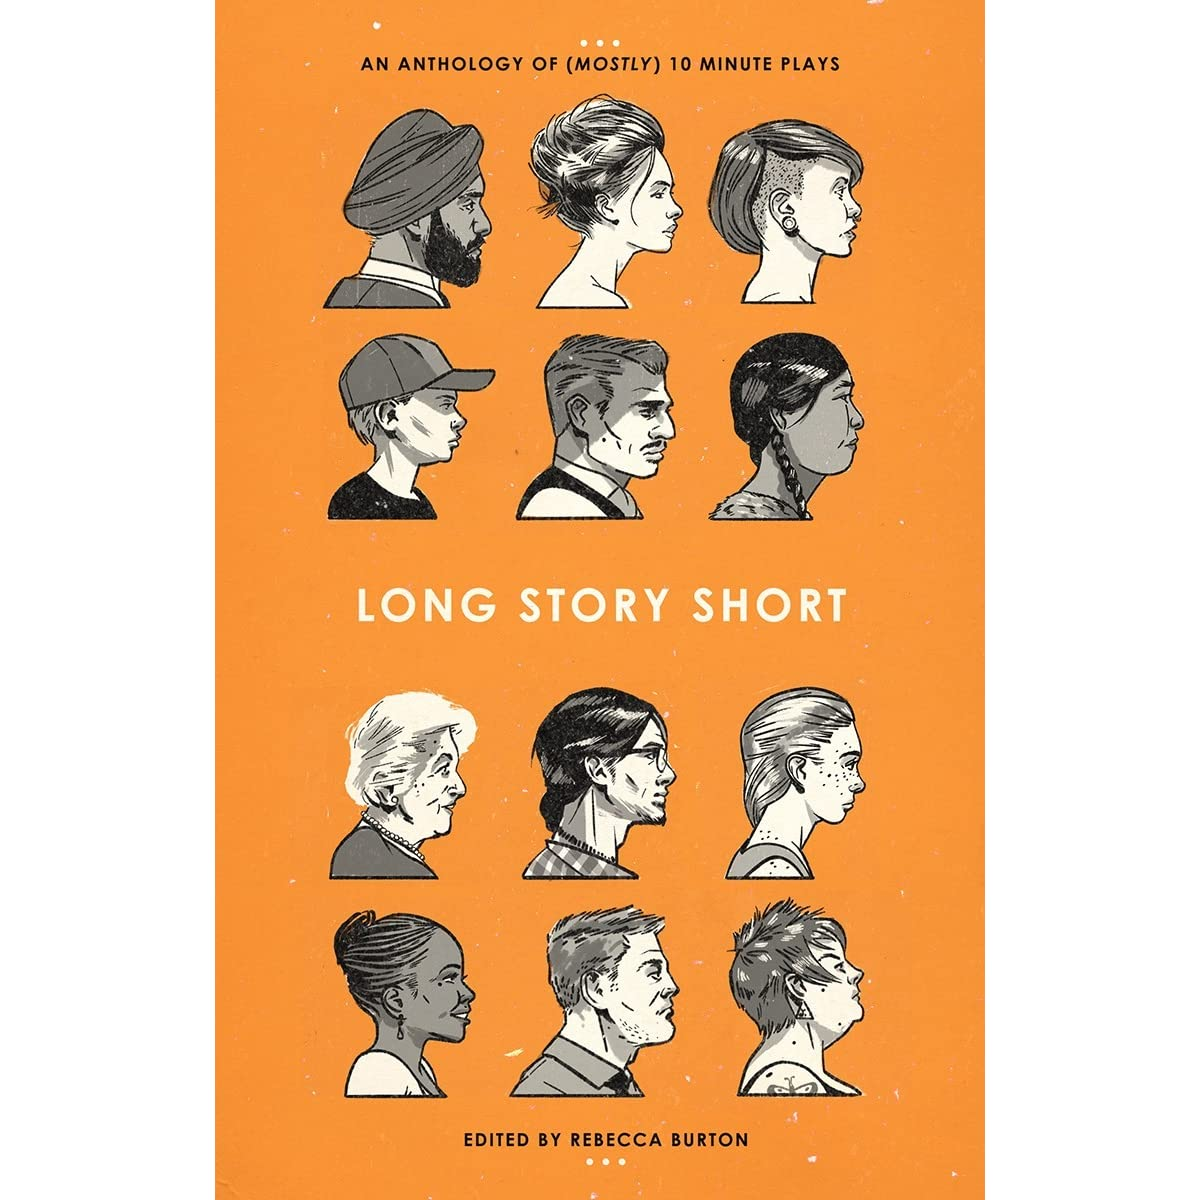 Antique Plays By Long Story Short Meaning Long Story Short Colin Quinn Long Story An Anthology Plays By Rebeccaburton Long Story An Anthology inspiration Long Story Short